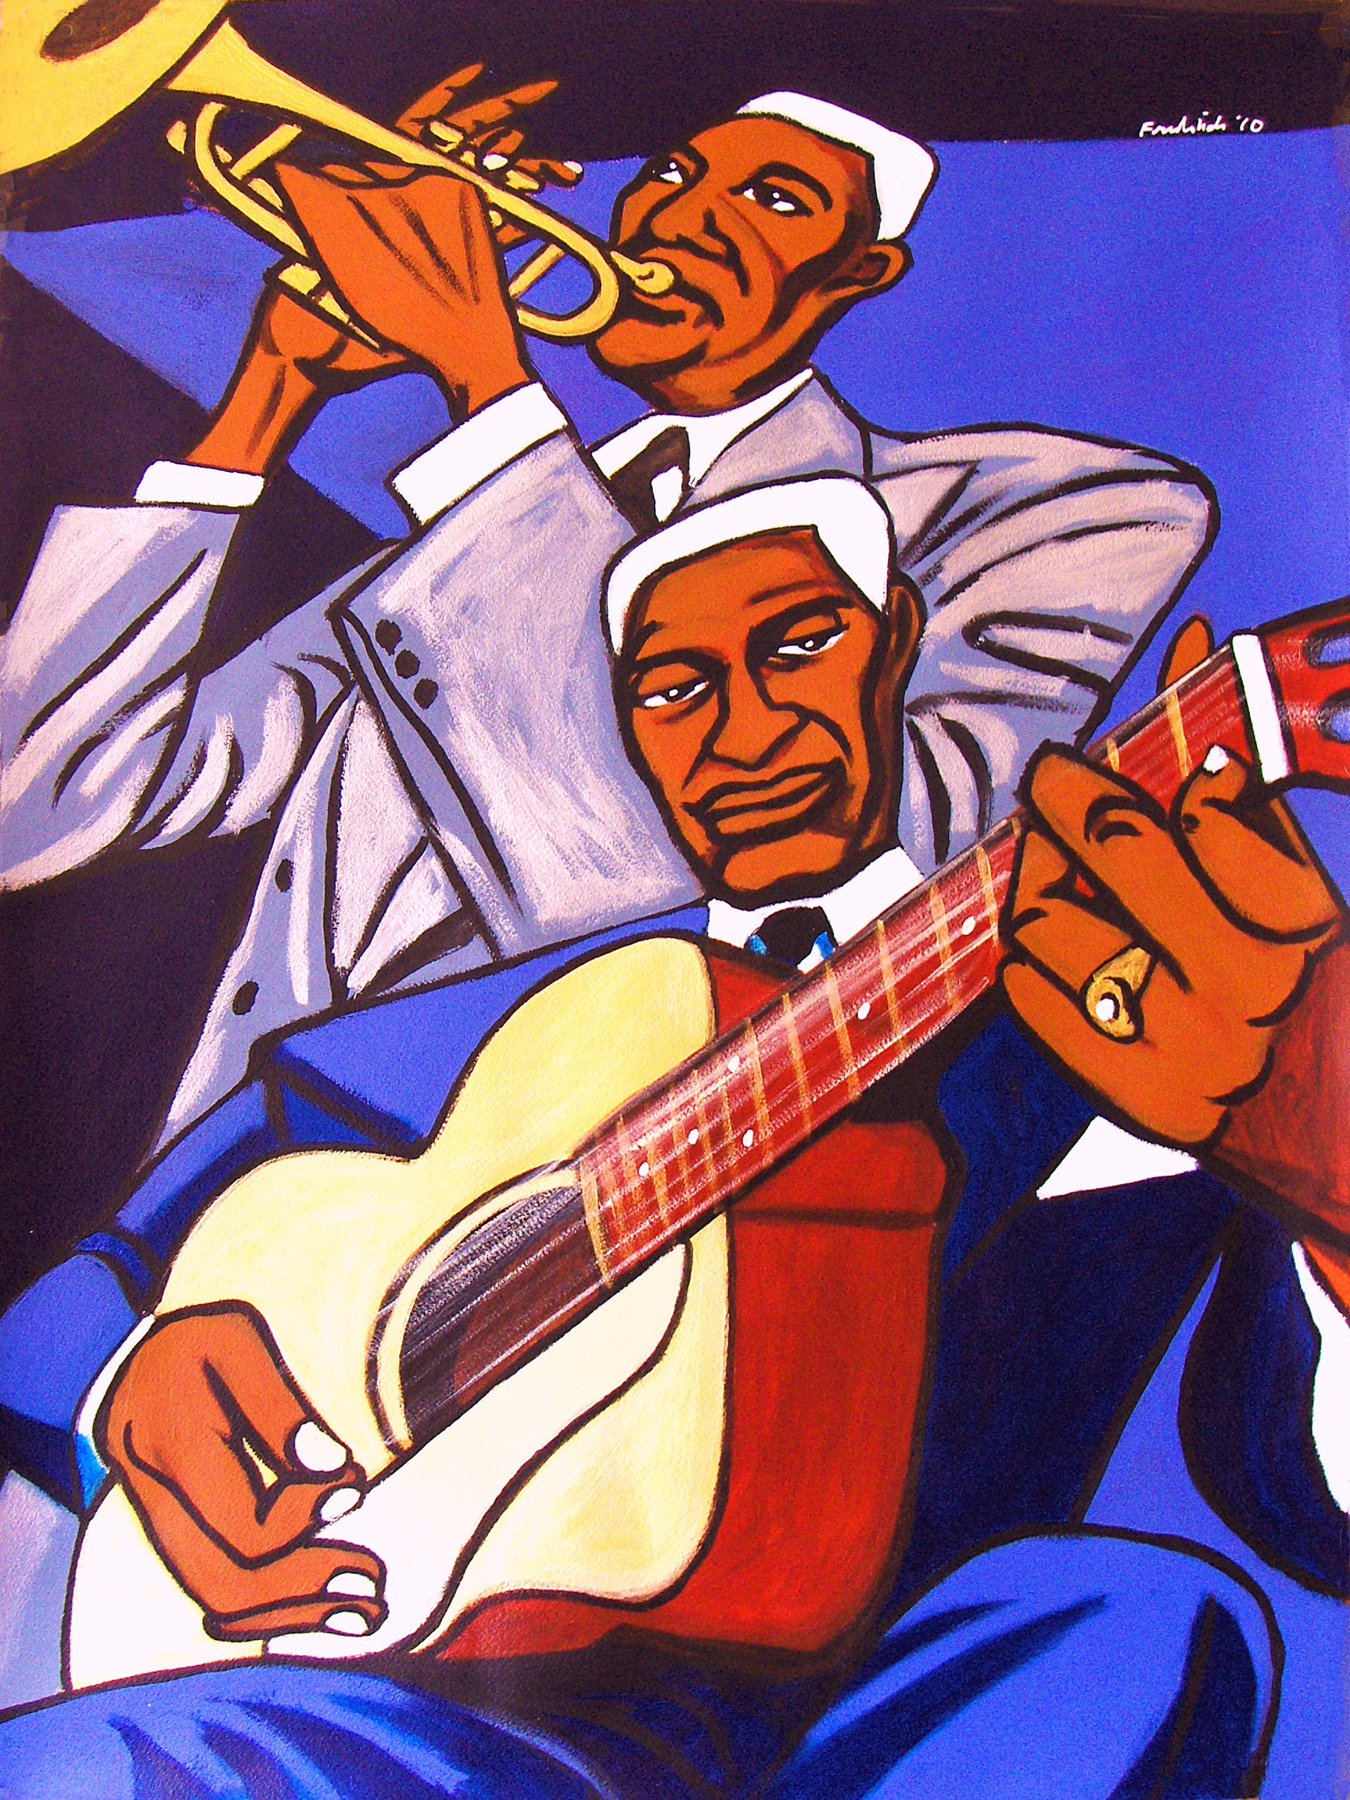 Bunk Johnson and Leadbelly